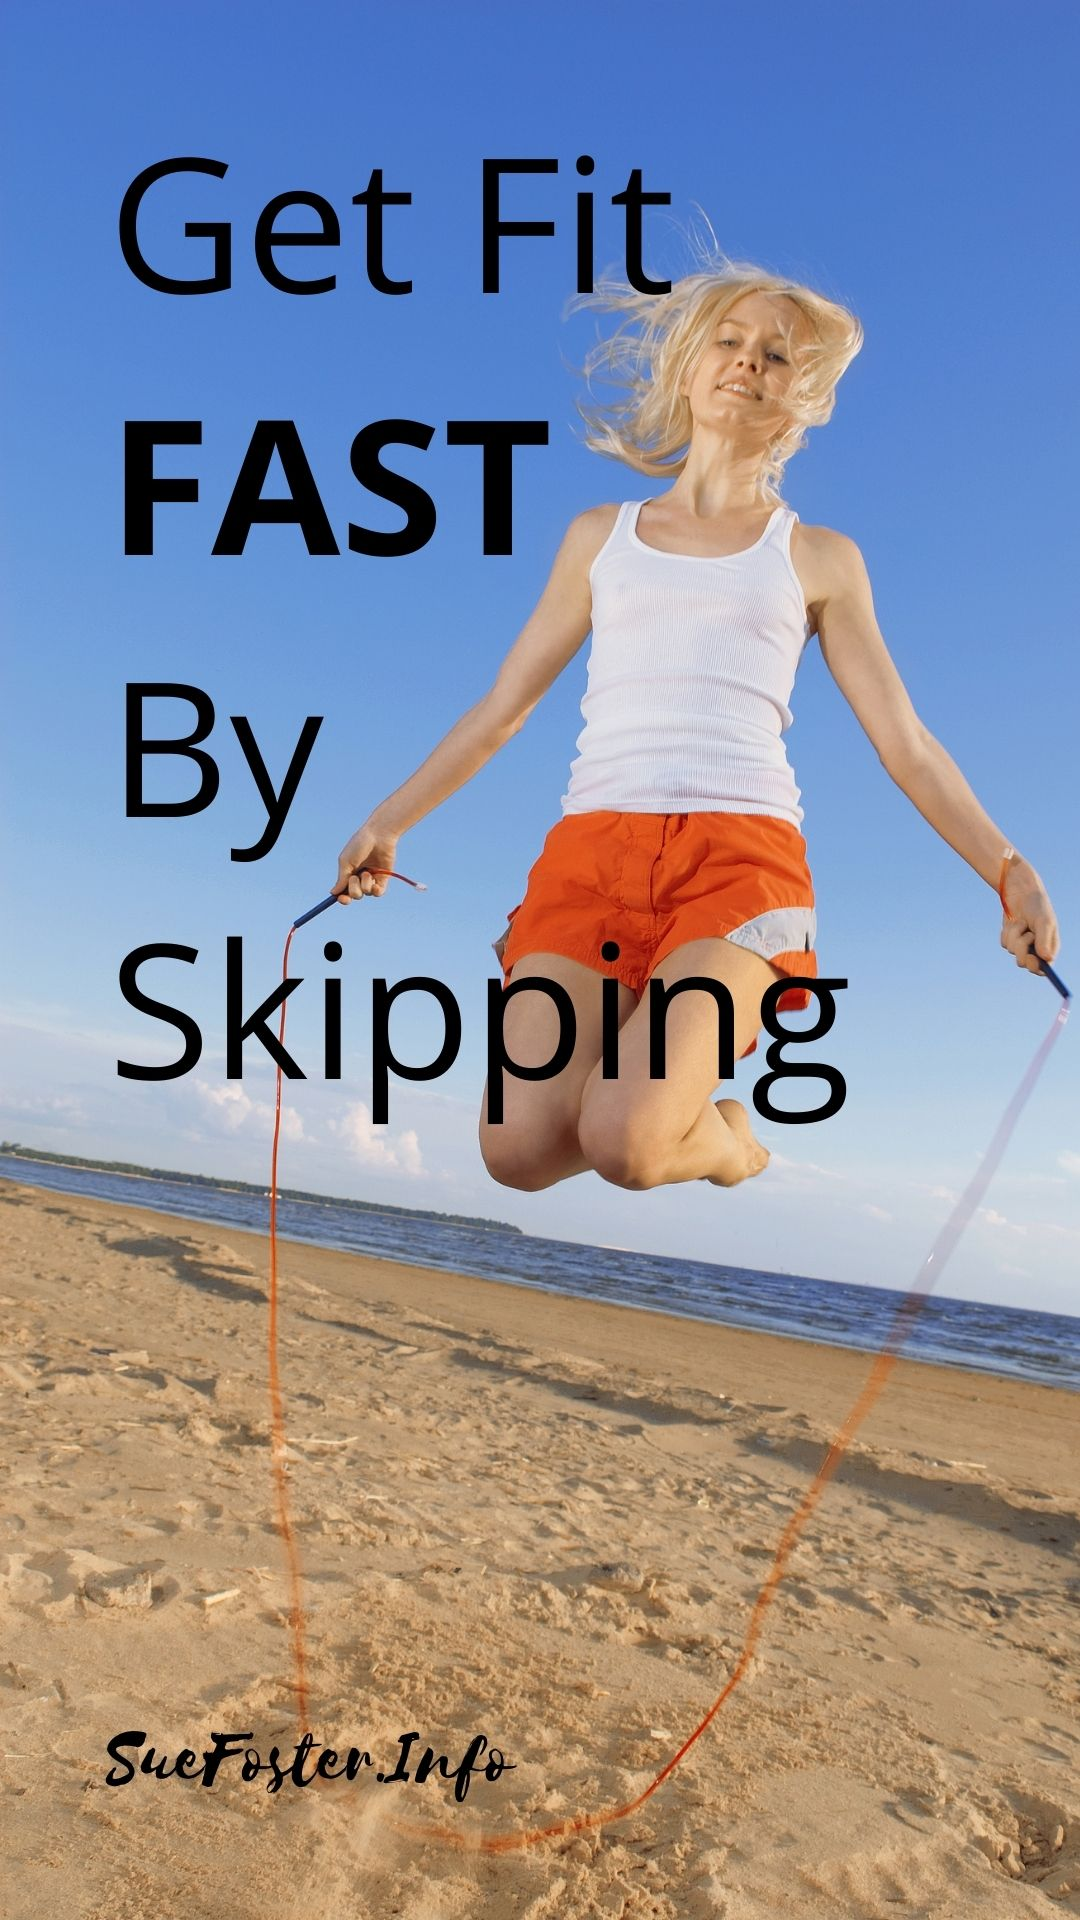 Learn how to get started skipping and stay safe using a jumping rope.